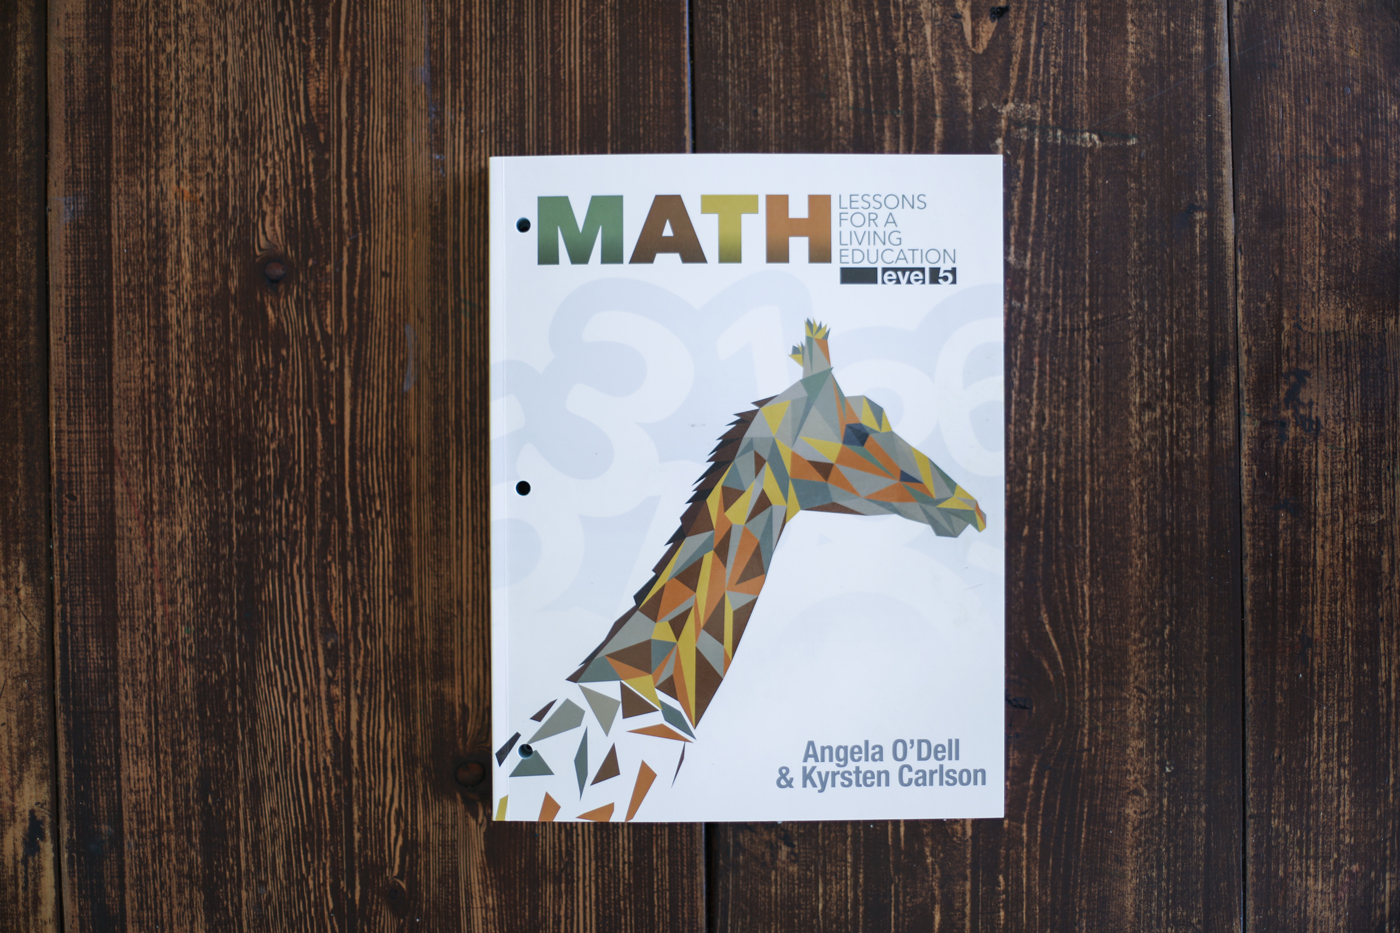 Homeschool Math comparison: Math Lessons for a Living Education